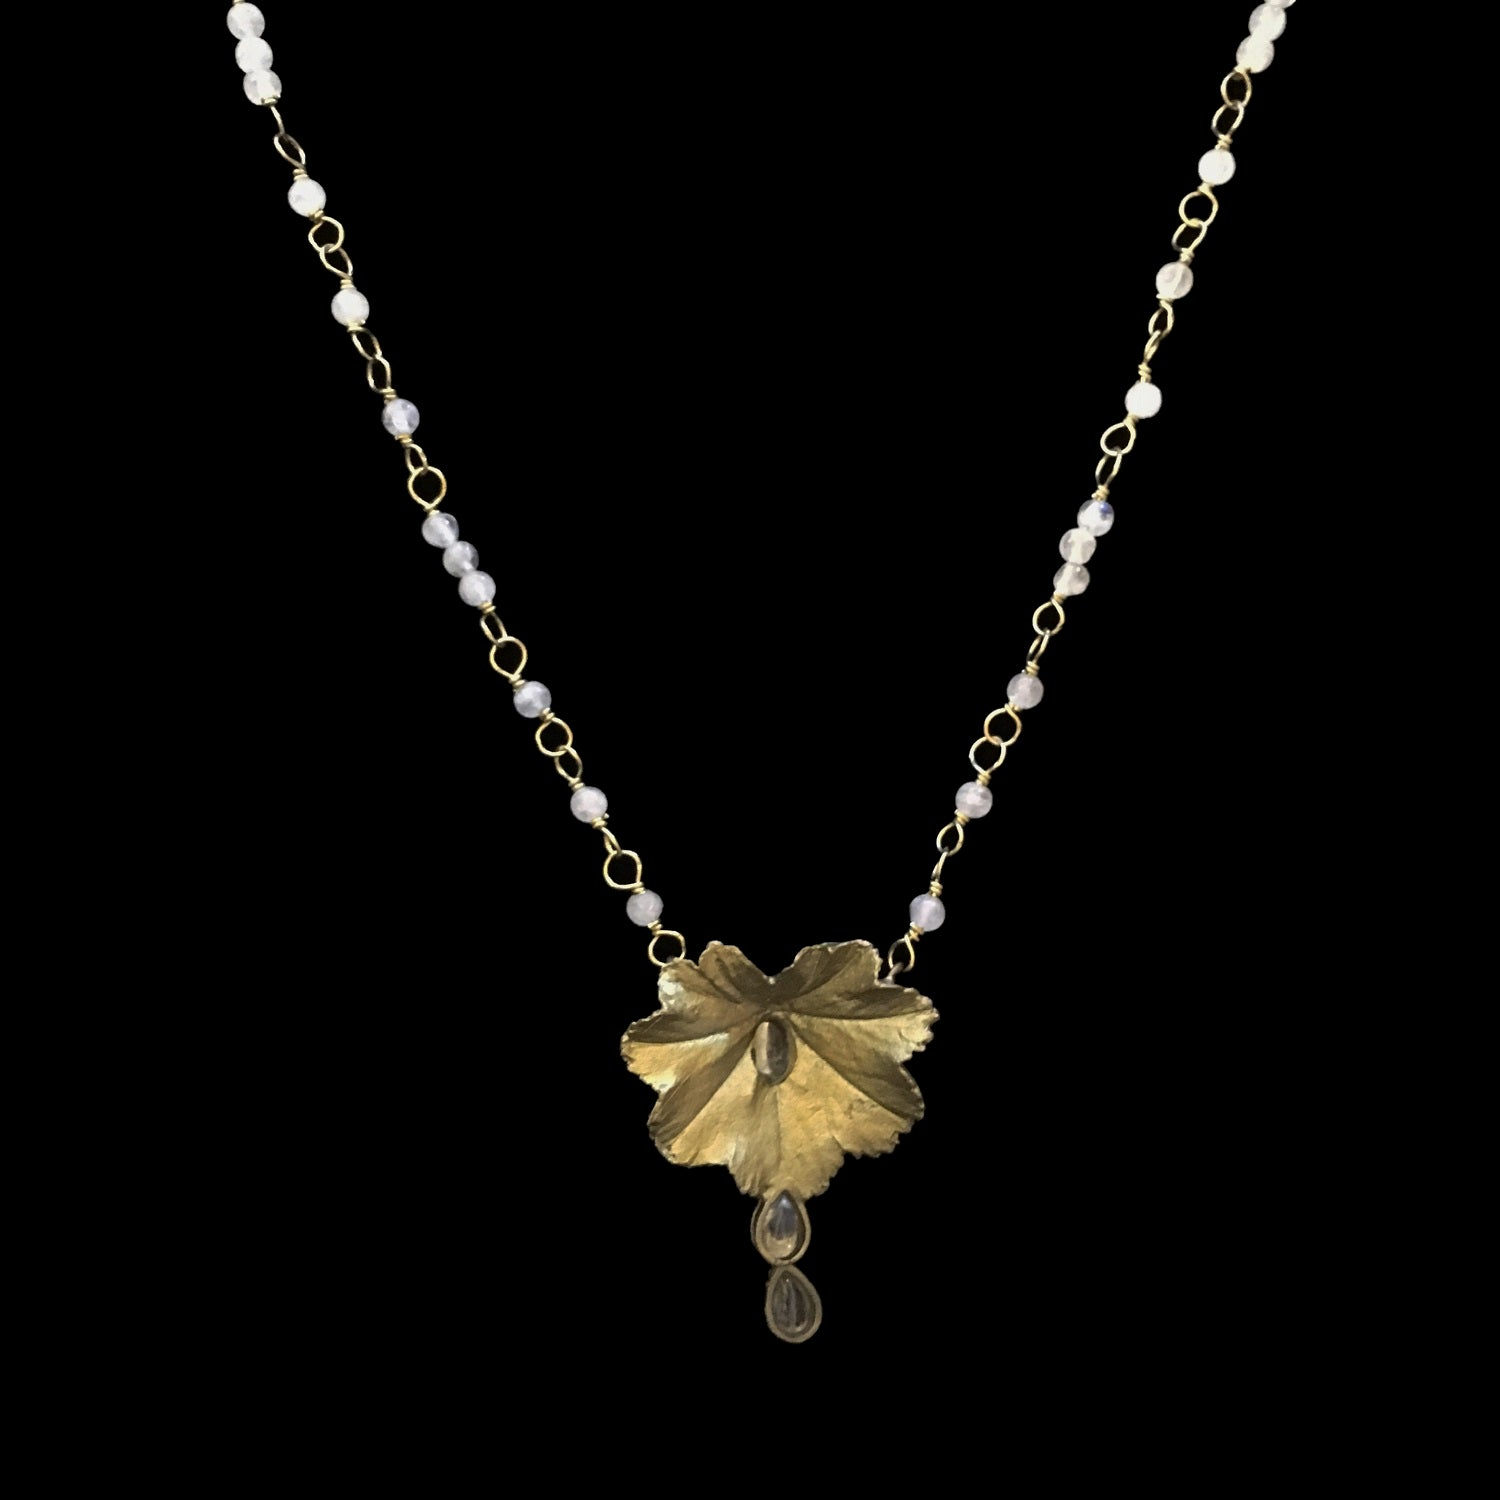 Lady's Mantle Pendant - Beads